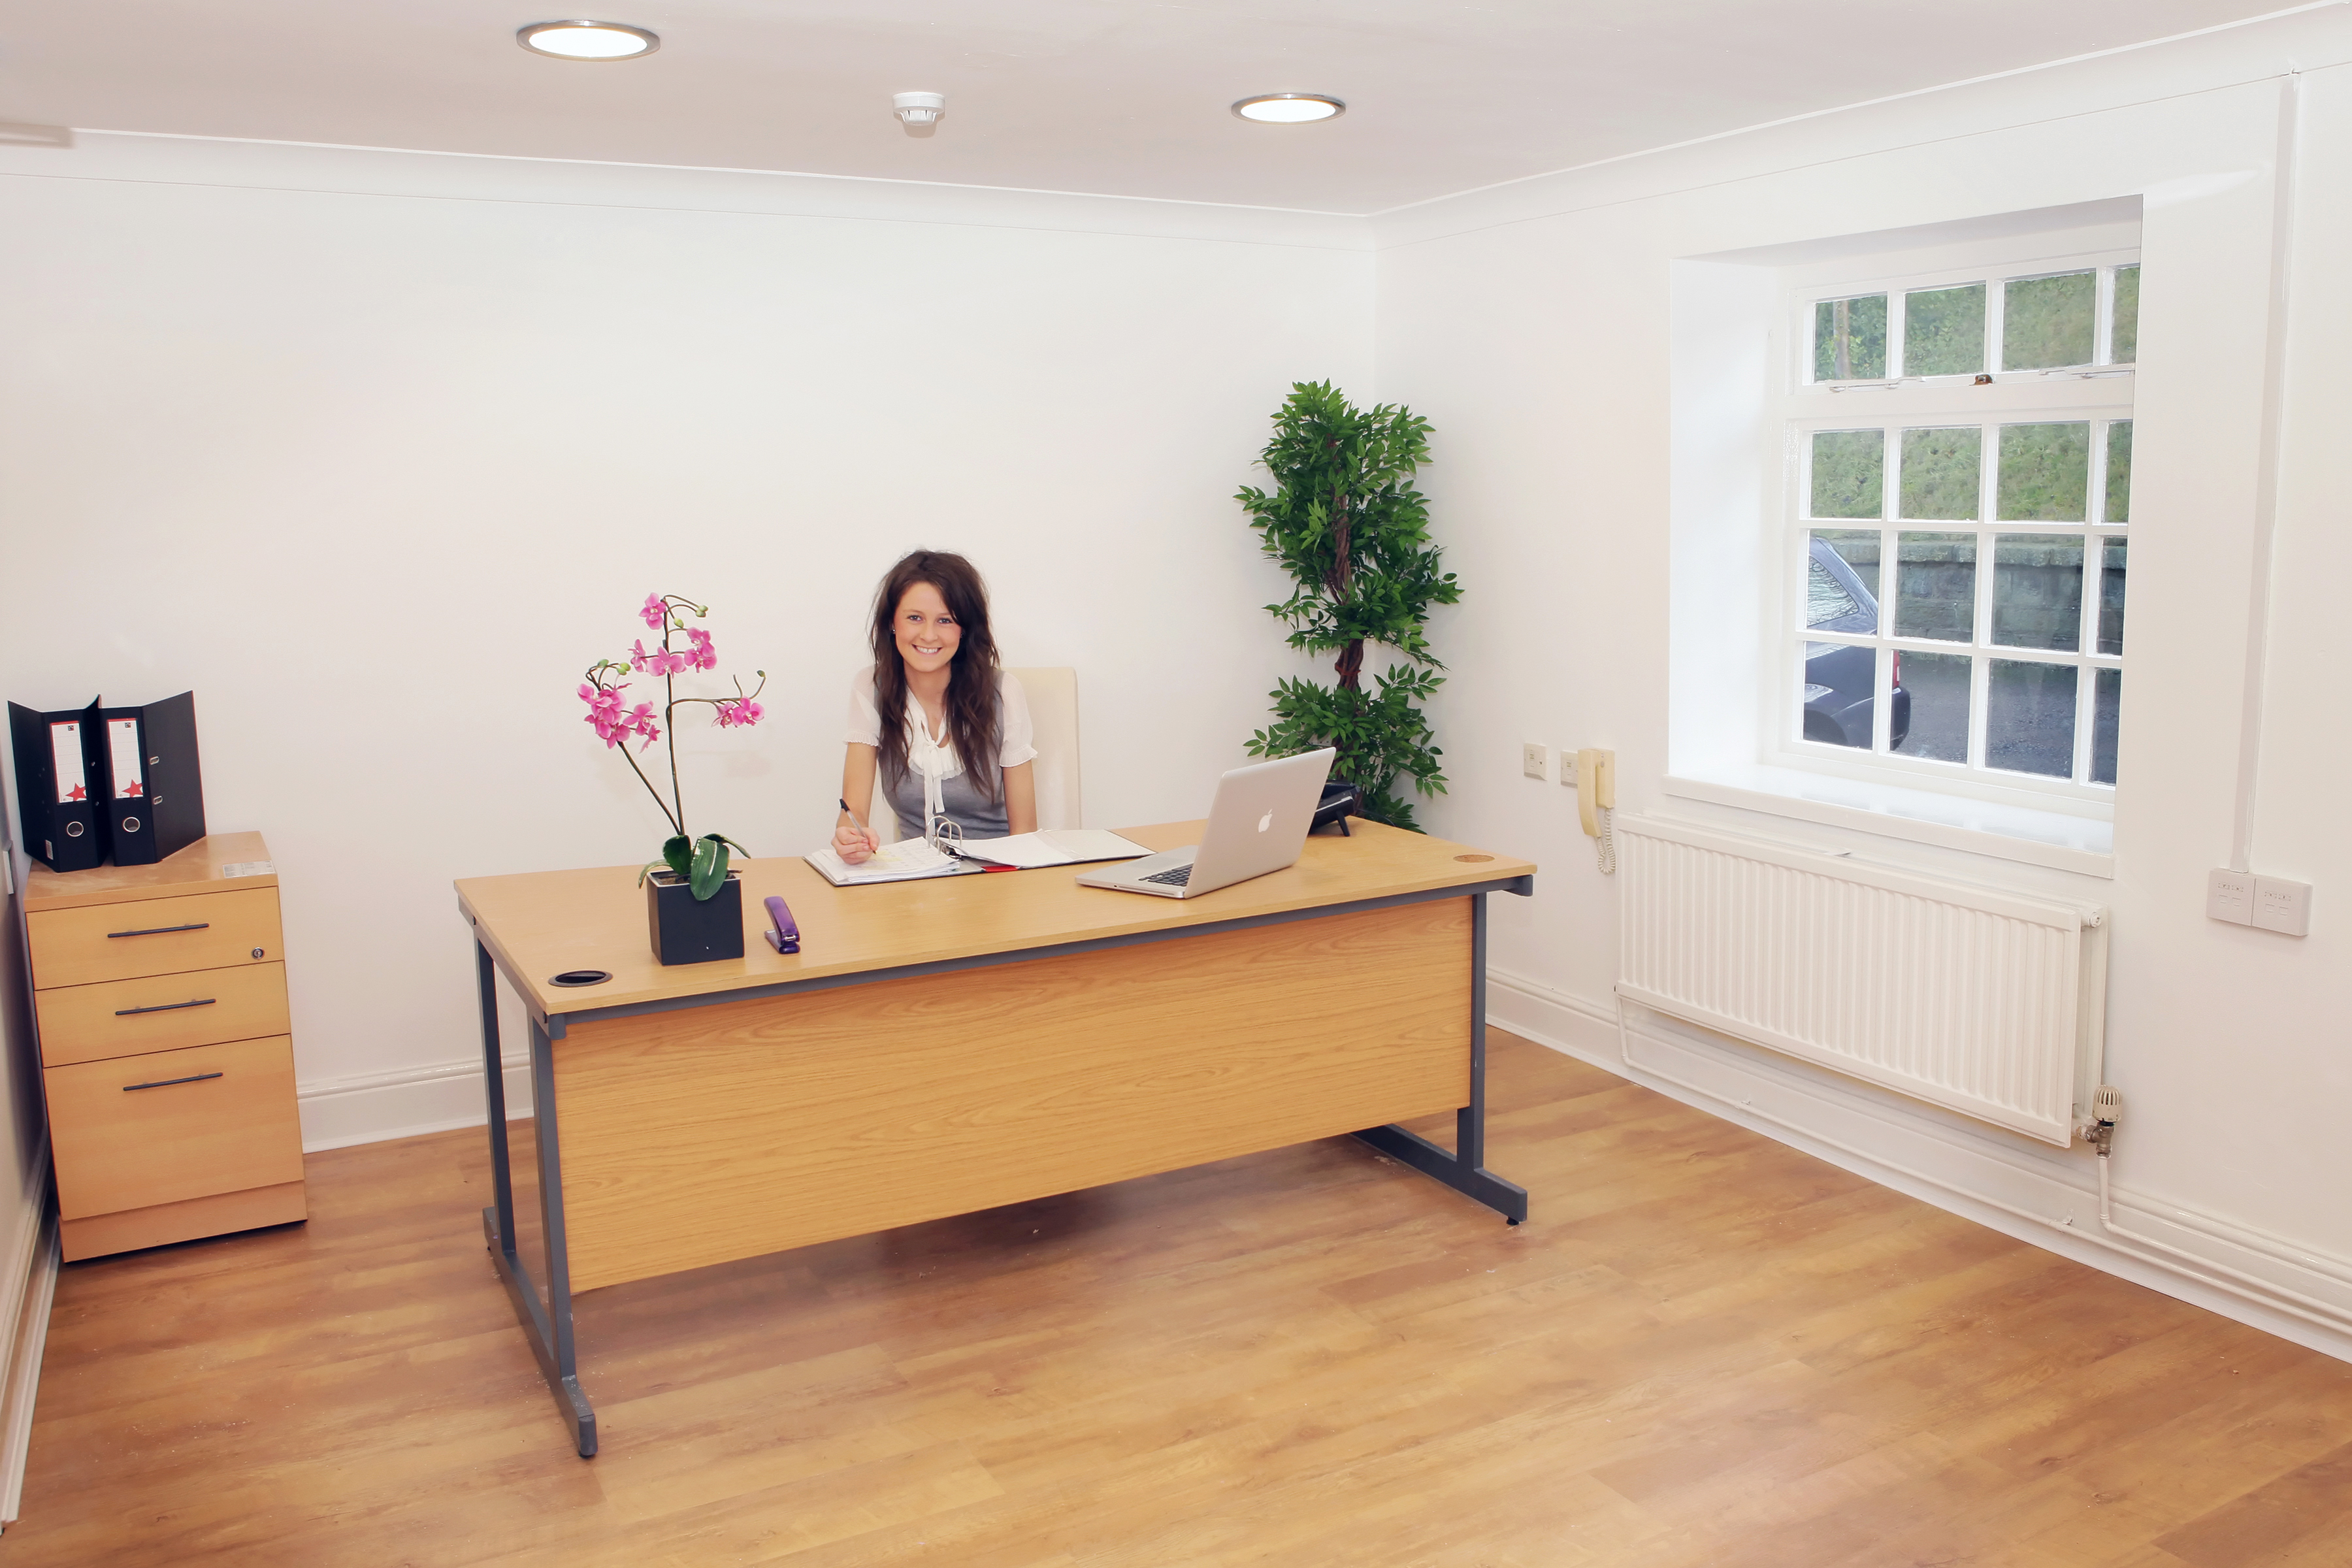 View available office space online at The Adelphi Mill, Macclesfield